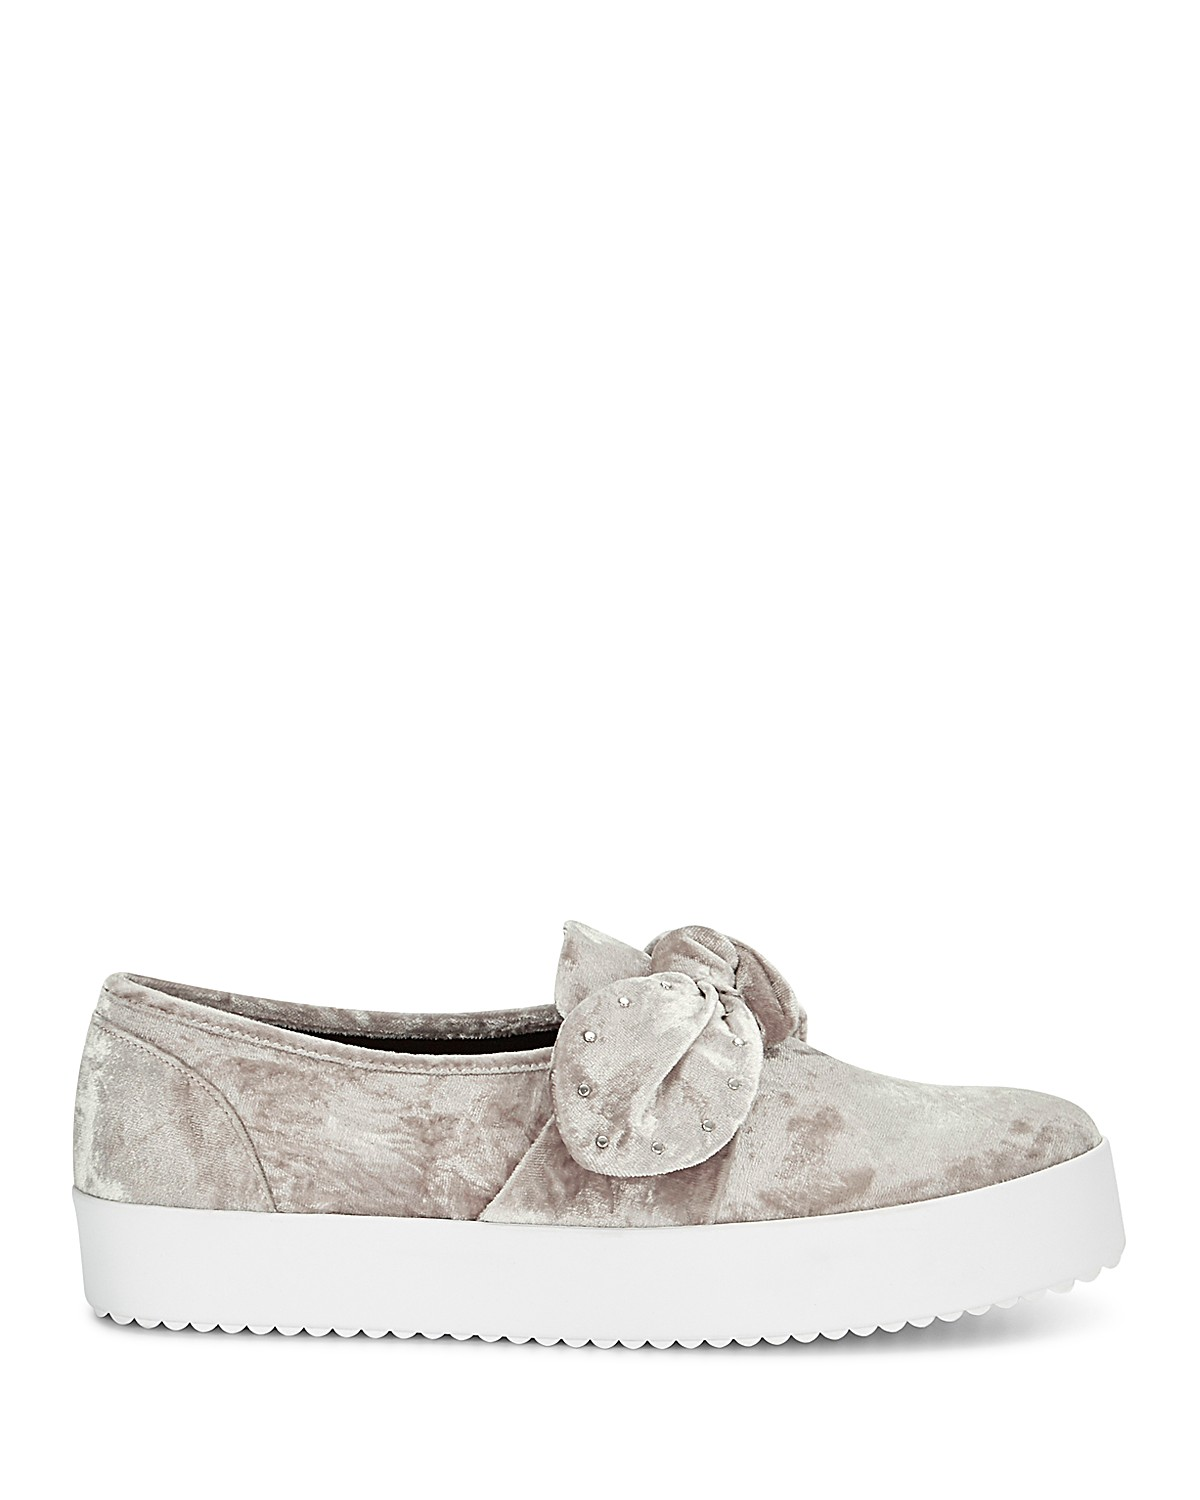 Rebecca Minkoff Women's Stacey Velvet Studded Bow Slip-On Sneakers aVj9UG